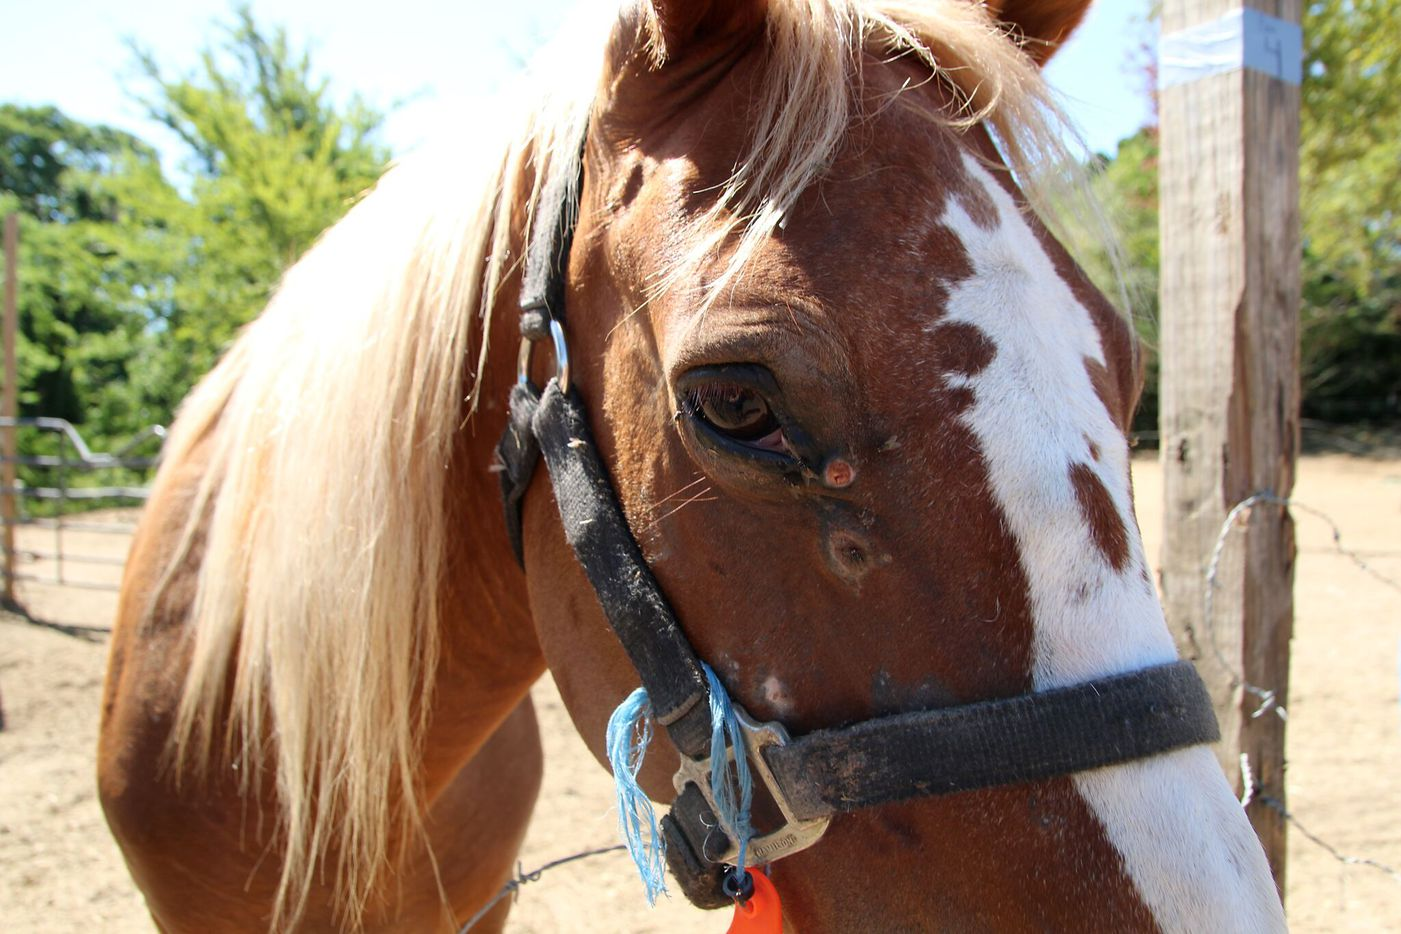 One of the horses seized by the SPCA in Dallas County.